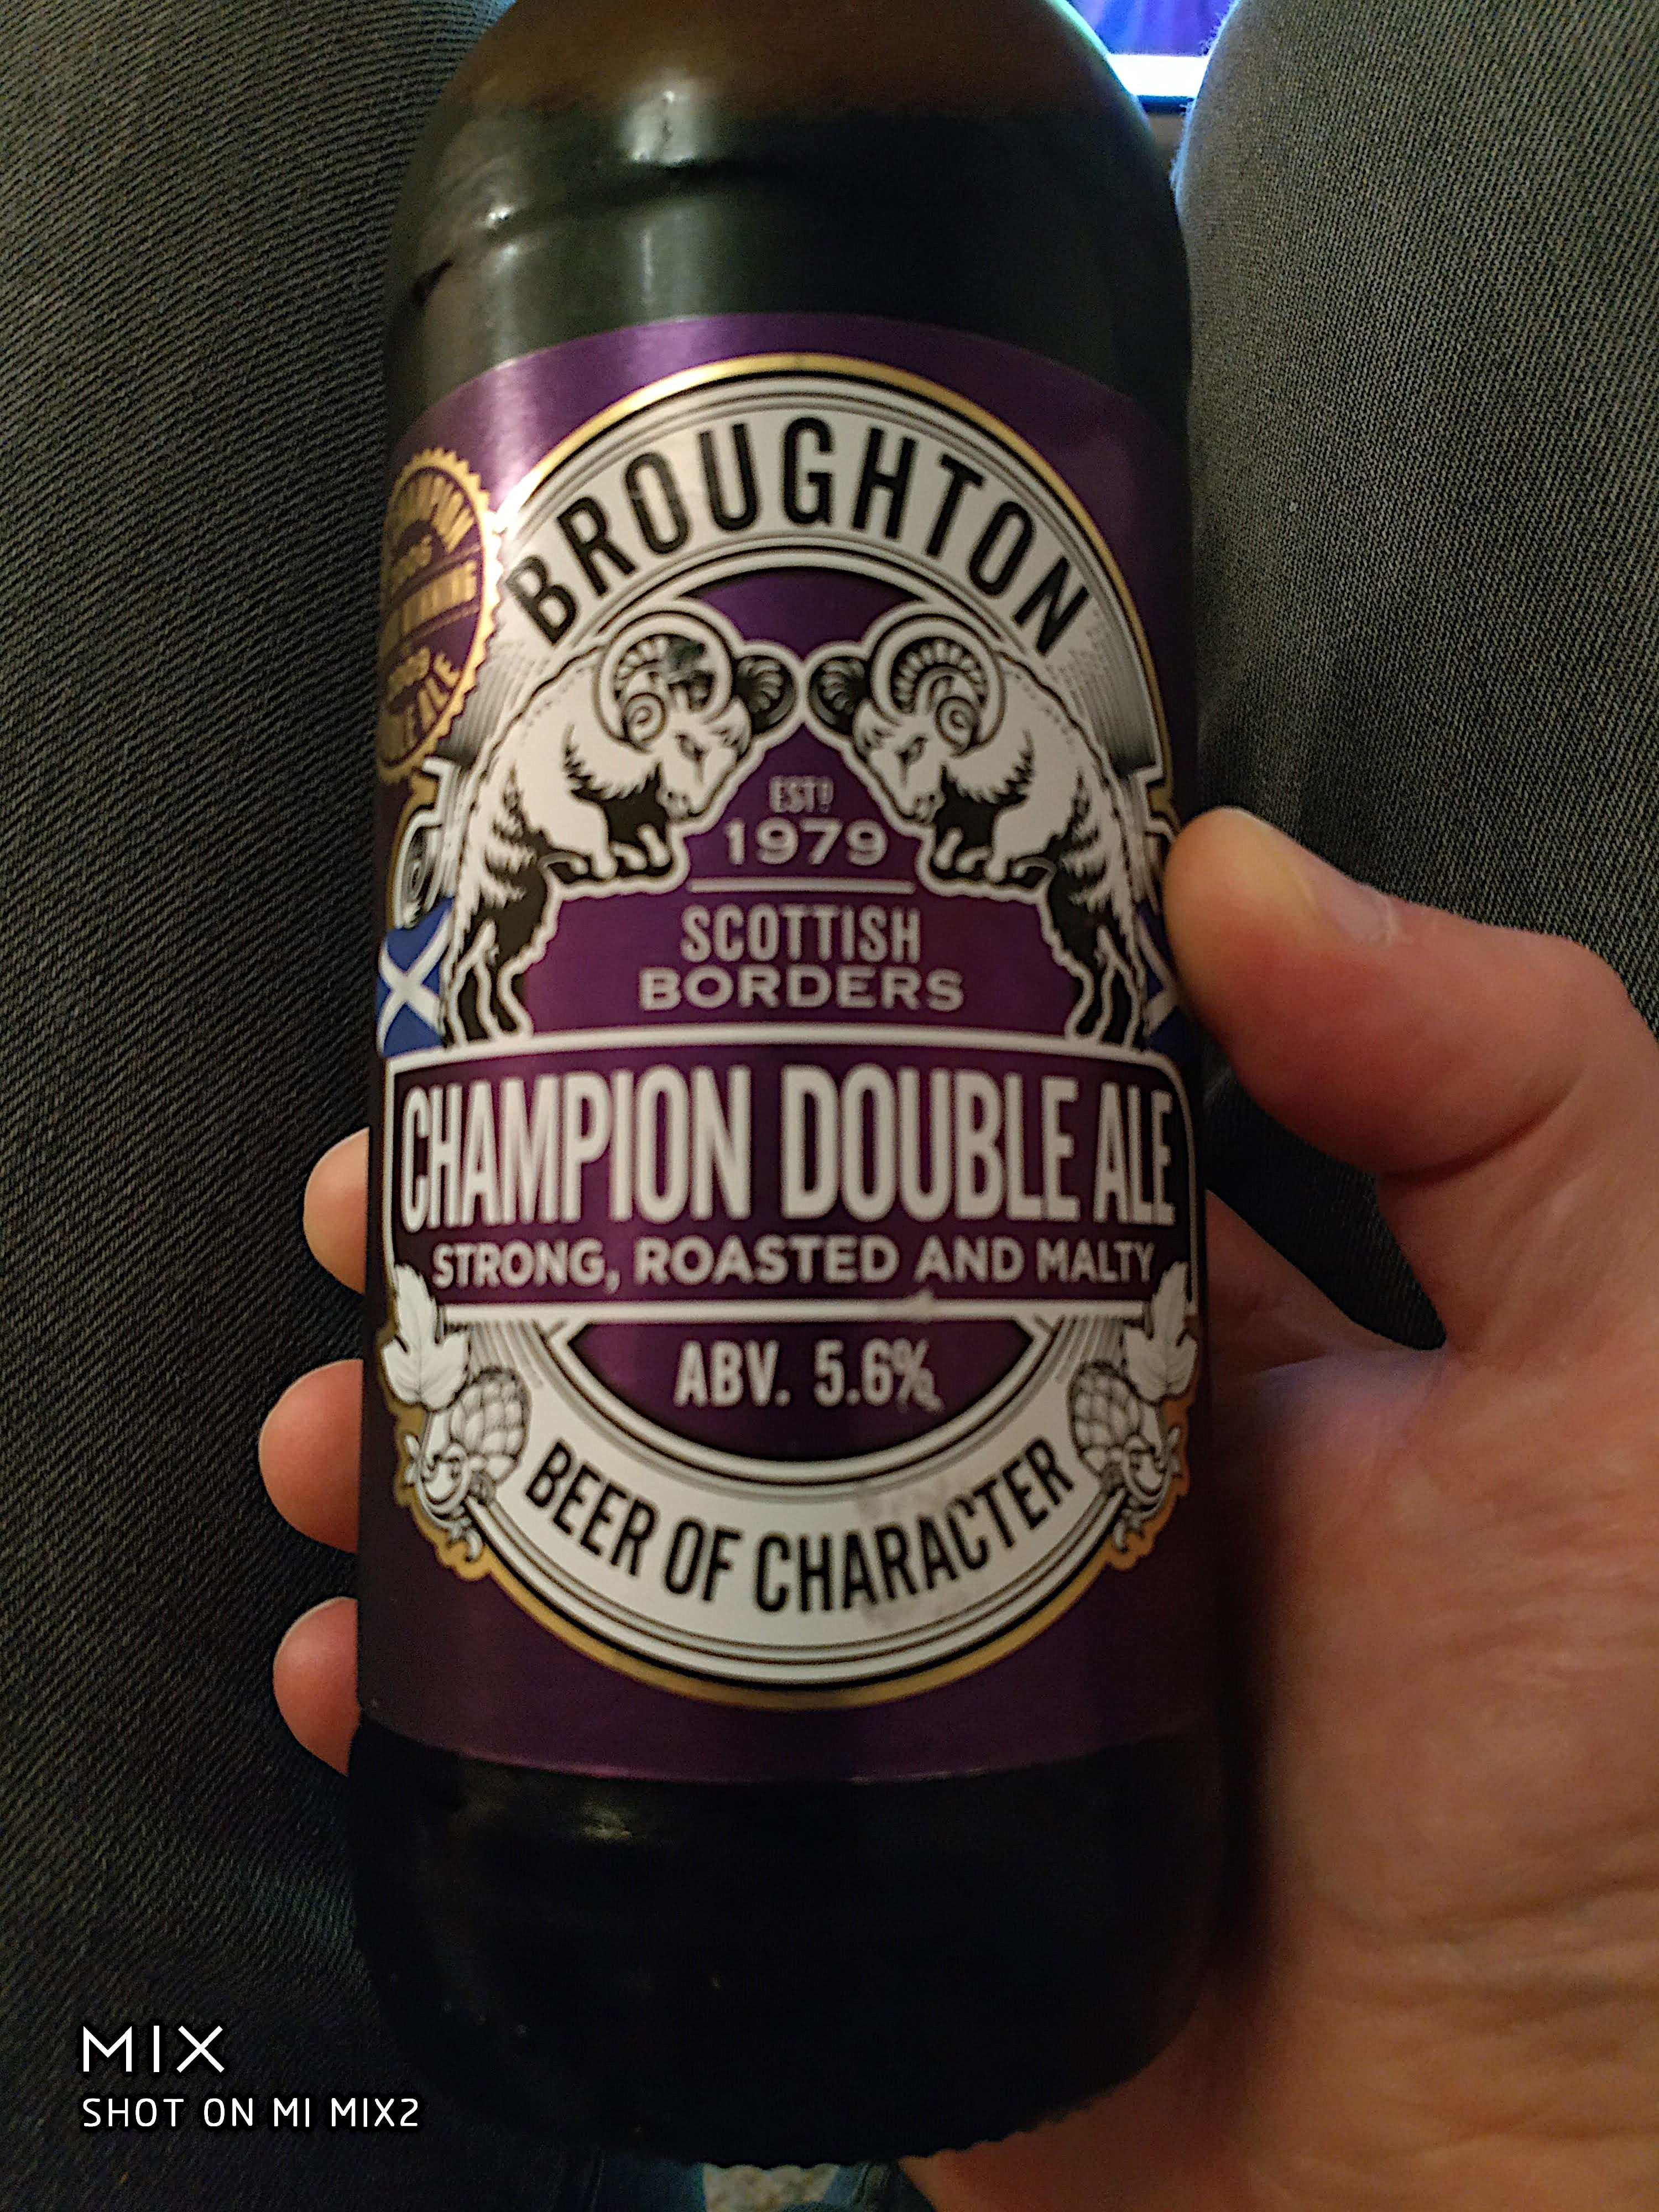 Broughton - Champion Double Ale